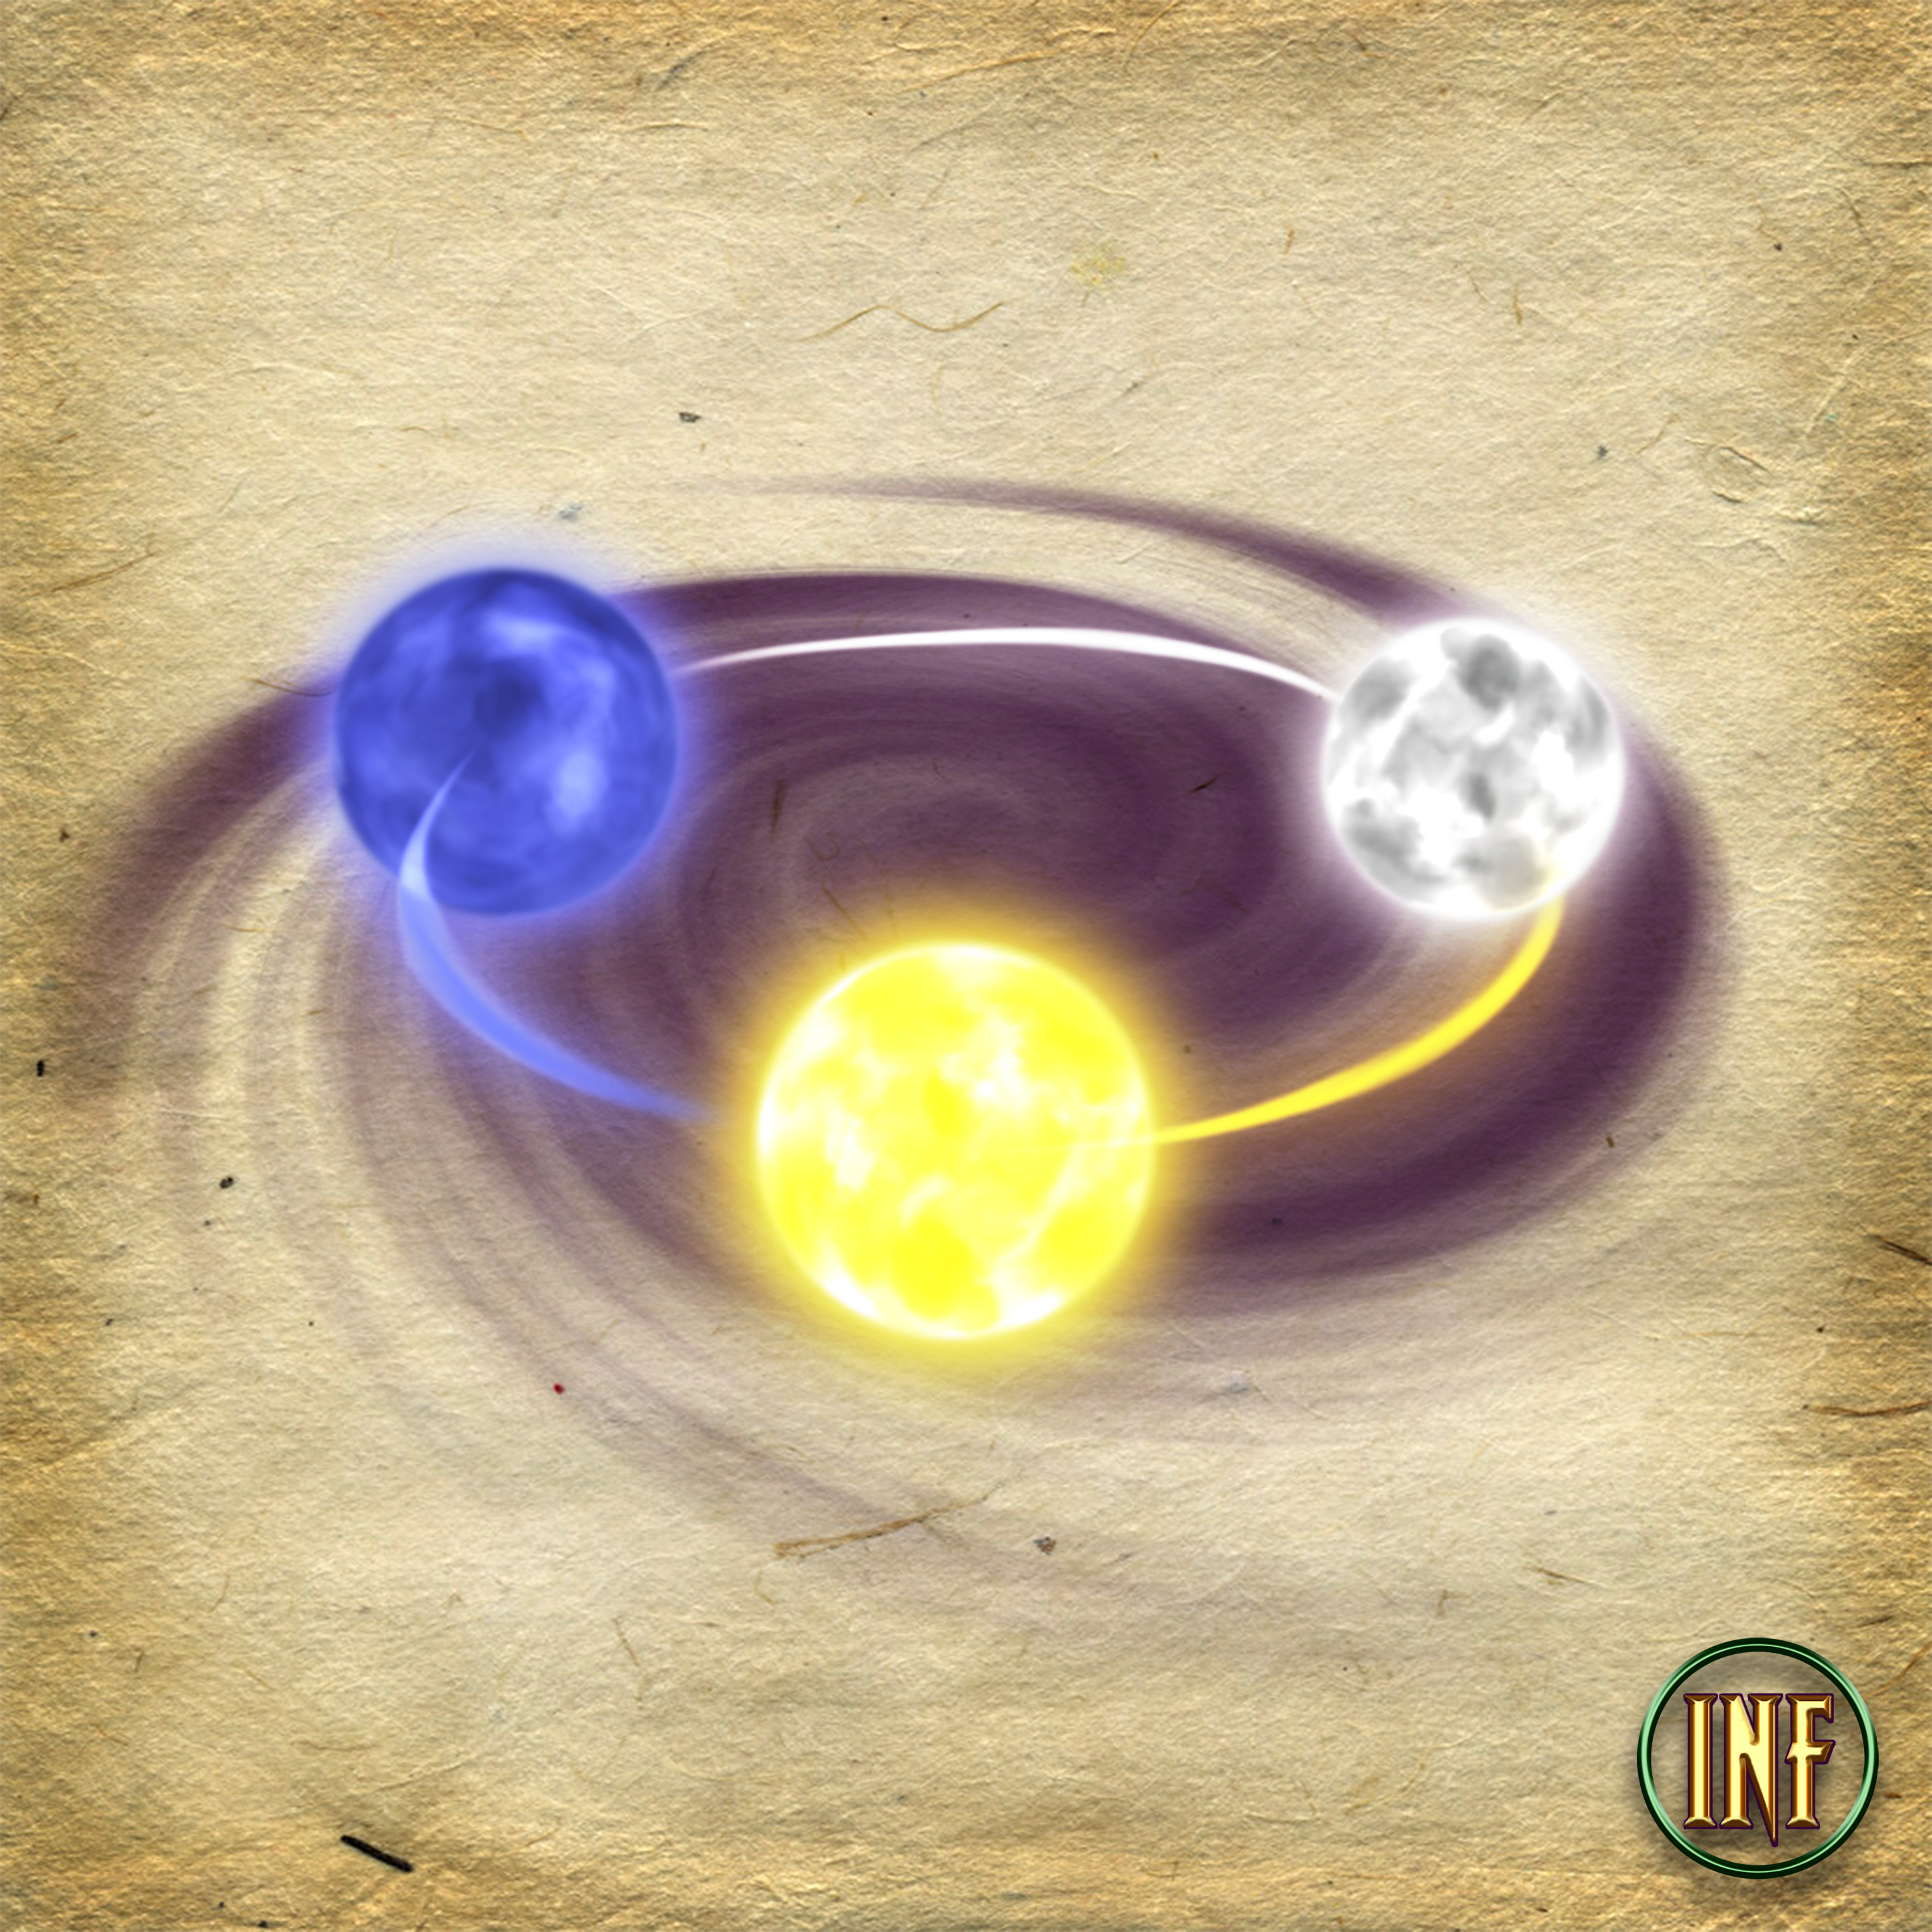 Interior Art 2- Three moons that hover around a paladin of the eclipse